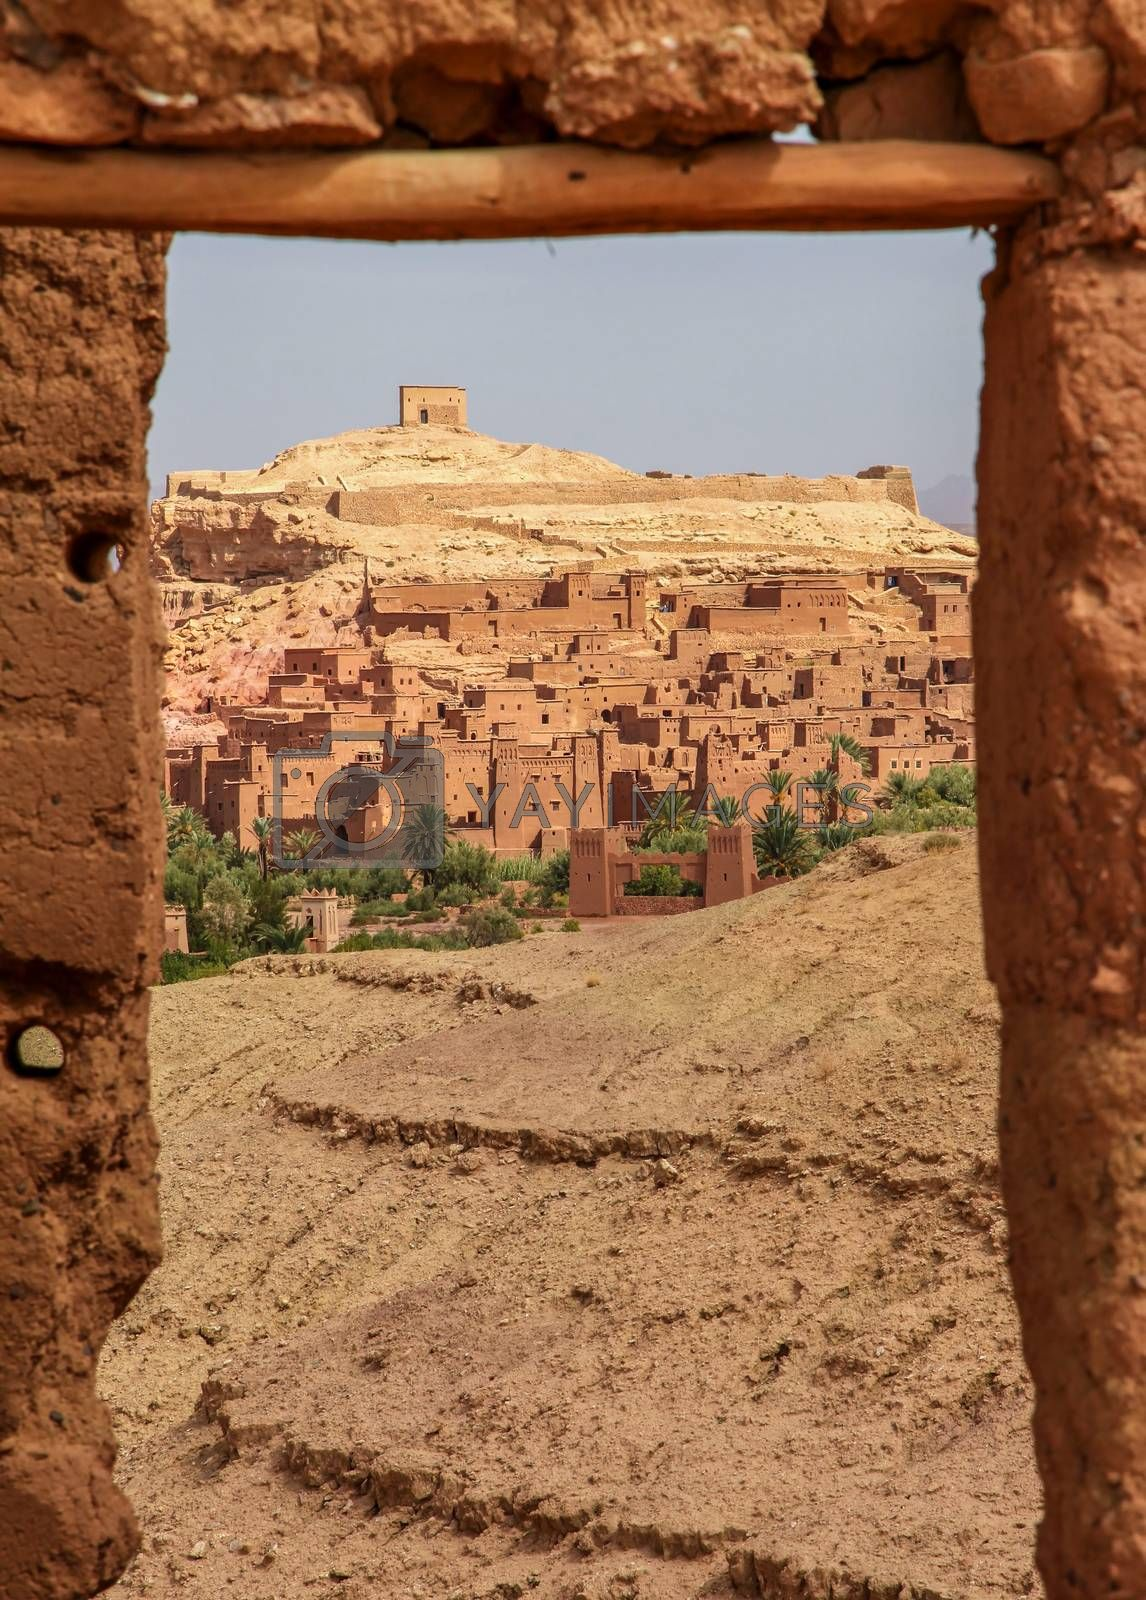 Ait Benhaddou, an ancient fortress city in Morocco near Ouarzazate on the edge of the sahara desert. Used in fils such as Gladiator, Kundun, Lawrence of Arabia, Kingdom of Heaven